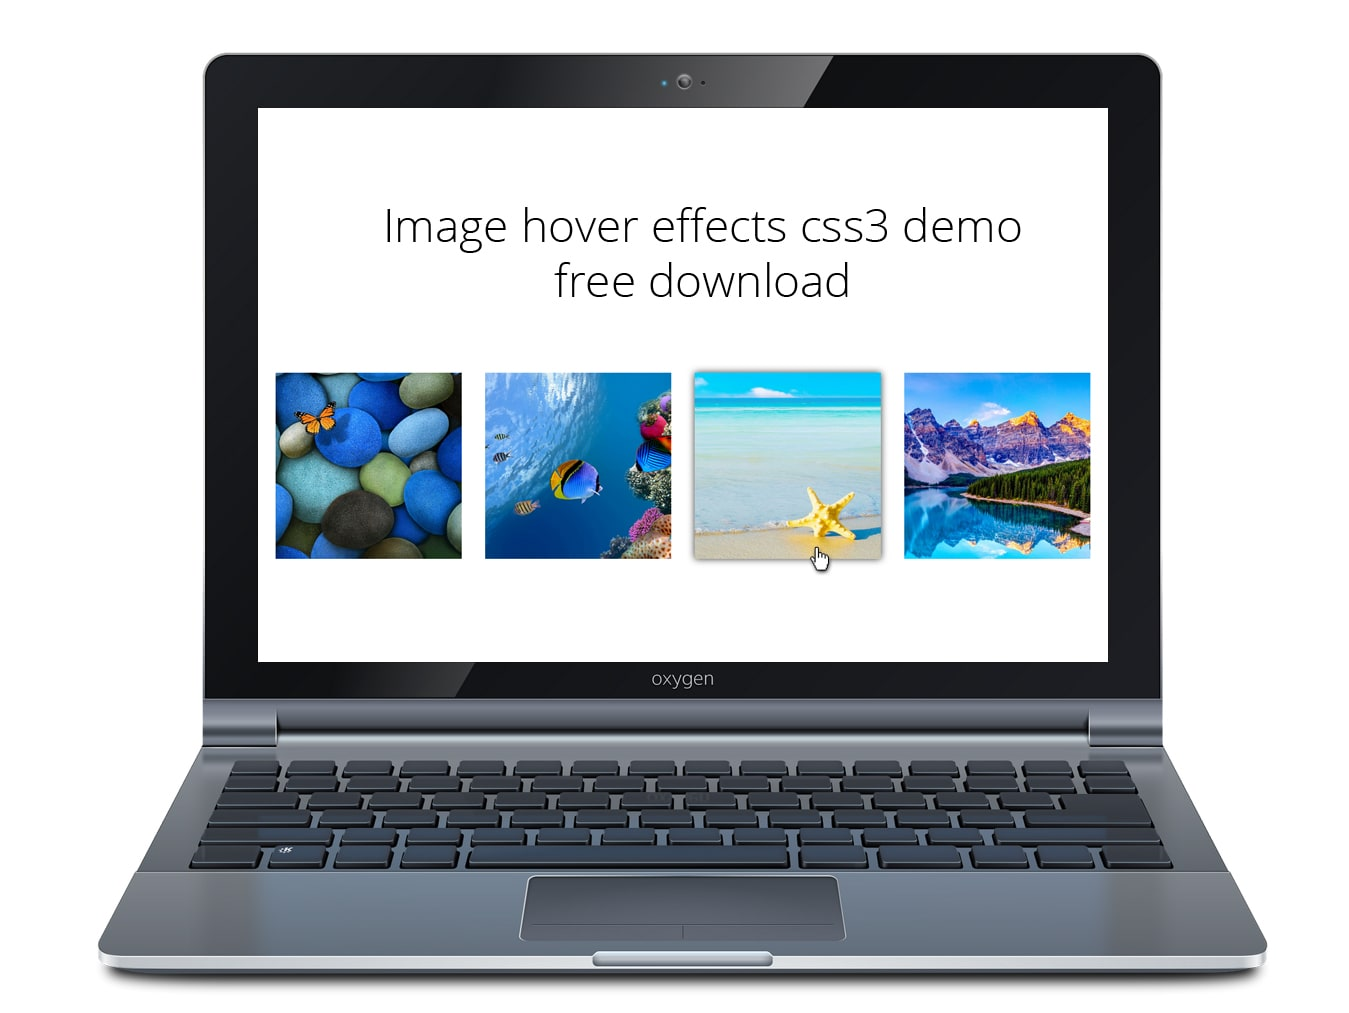 Image hover effects css3 demo free download